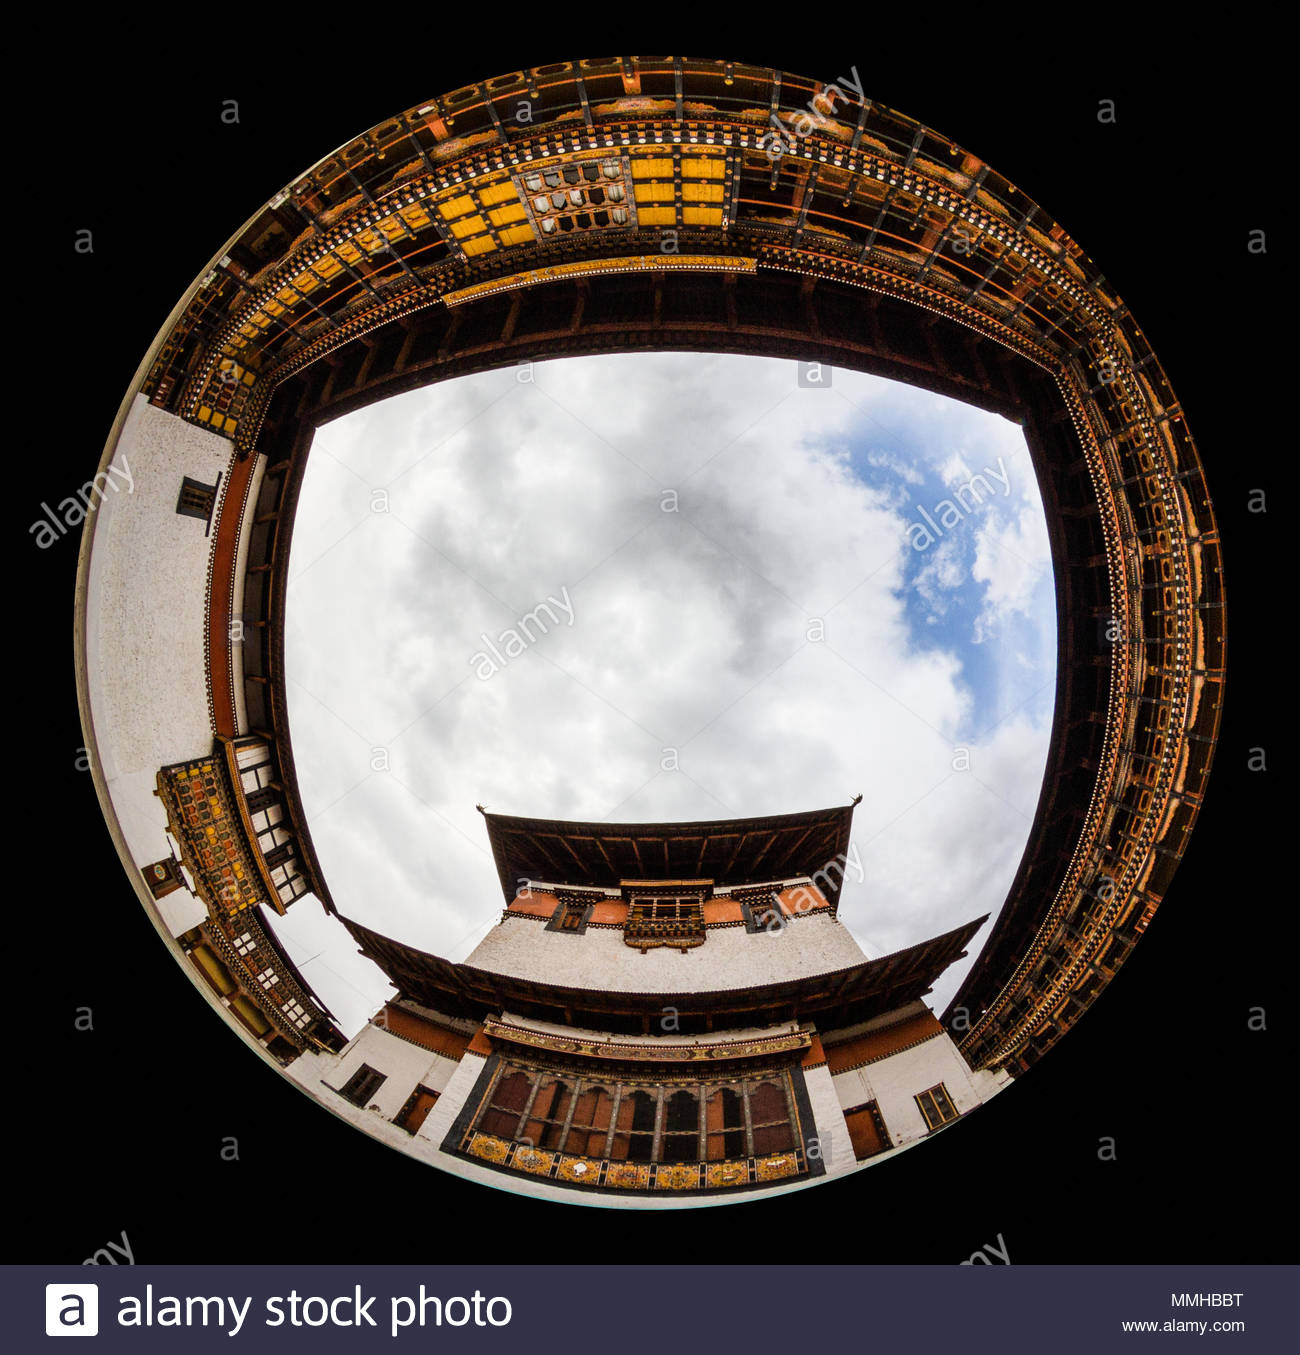 Fisheye lens photography lends itself naturally to tight areas with subjects all around. In this case, the image is taken looking up at the temple inside the Rinpung Dzong in Paro, Bhutan. Dzongs were once the fortresses that housed local rulers before Bhutan became a united country. Today they are typically used for both regional government activities and by Buddhist monks as a monastery. As Buddhism is the official religion of Bhutan, the mixing of the two uses is quite natural. - Stock Image